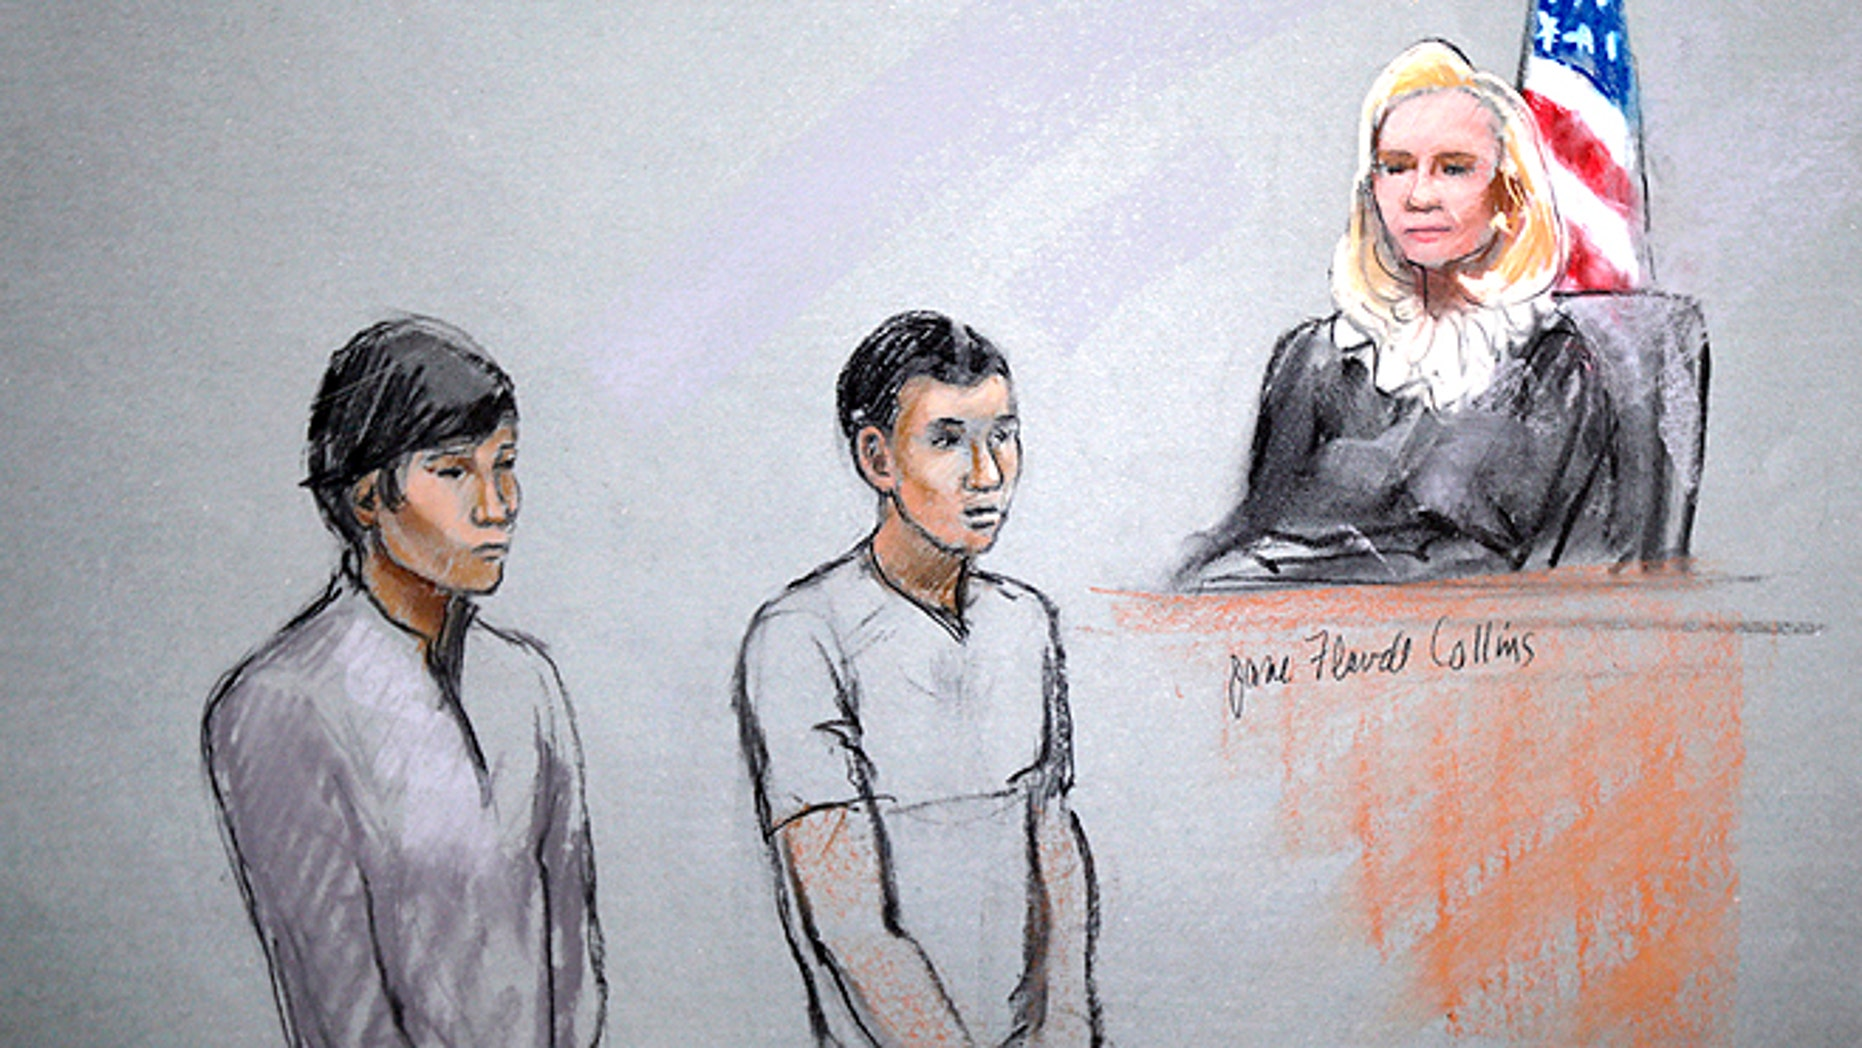 May 1, 2013: A courtroom sketch by artist Jane Flavell Collins shows defendants Dias Kadyrbayev, left, and Azamat Tazhayakov appearing in front of Federal Magistrate Marianne Bowler at the Moakley Federal Courthouse in Boston. The two college friends of Boston Marathon bombing suspect Dzhokhar Tsarnaev have been indicted Thursday, Aug. 8, 2013 on obstruction conspiracy charges. Dias Kadyrbayev and Azamat Tazhayakov are accused of trying to dispose of evidence from Dzhokhar Tsarnaev's dorm room. The two 19-year-olds have been detained since they were initially charged in May. If convicted, they face up to 20 years in prison. (AP/Jane Flavell Collins)